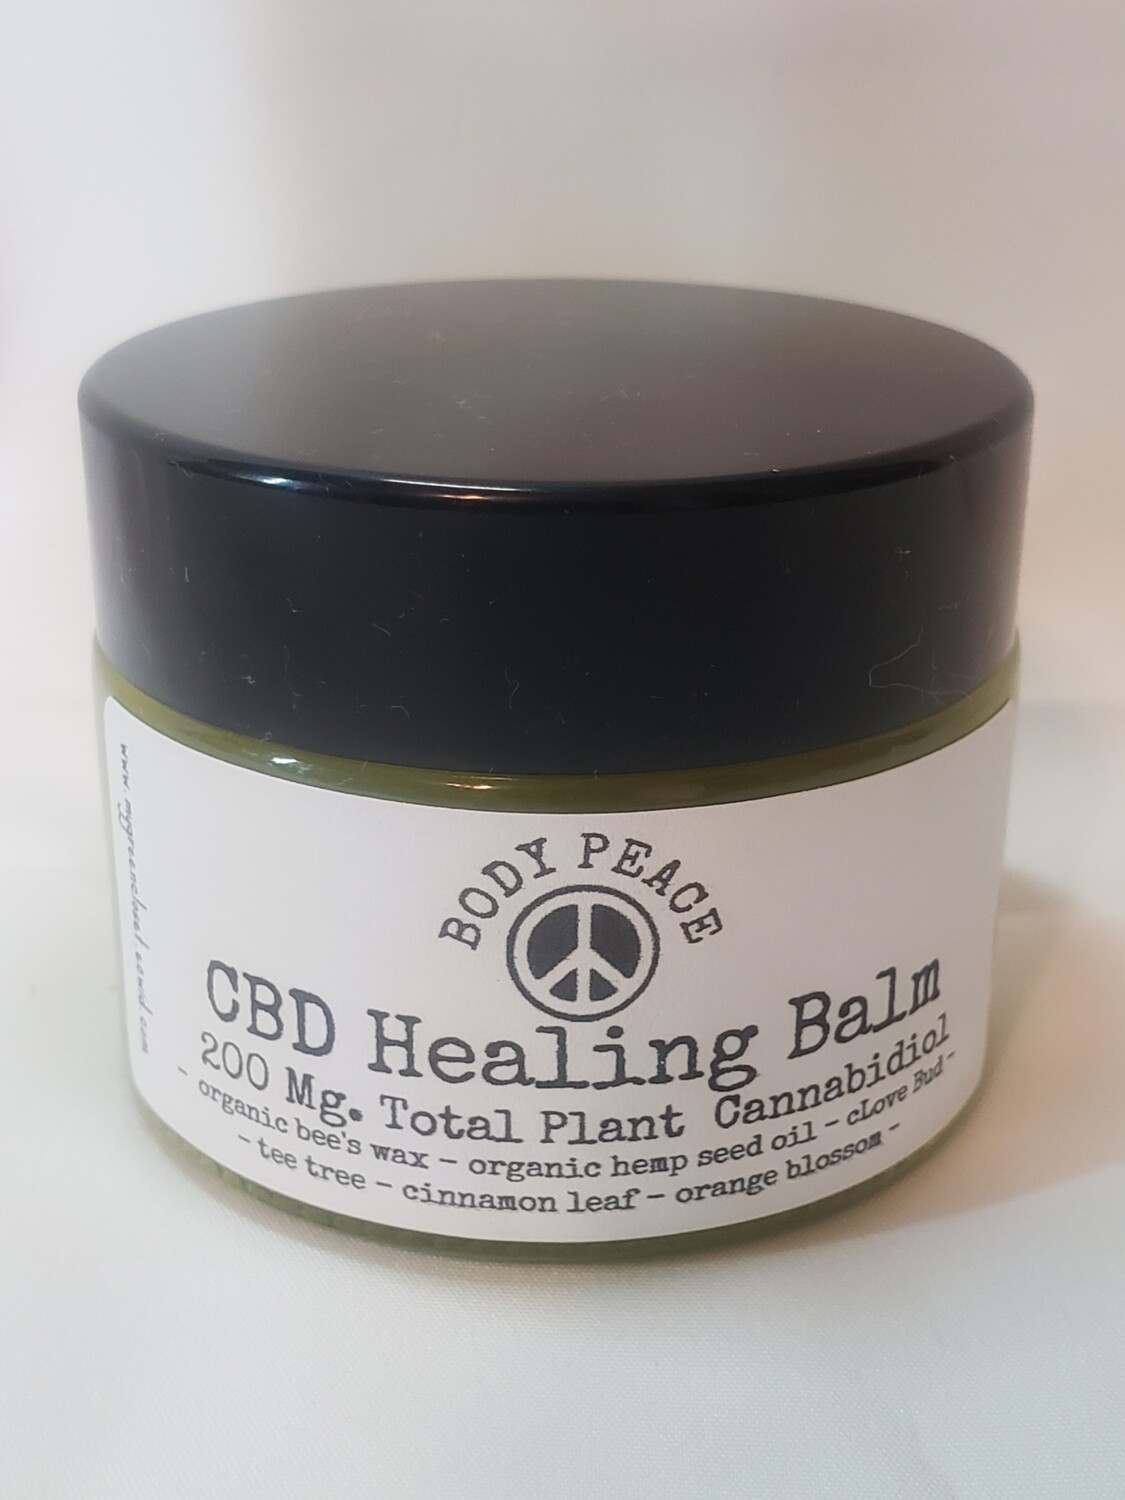 200mg Total Plant CBD Healing Salve  * voted #1 in Pain Relieving topicals *my